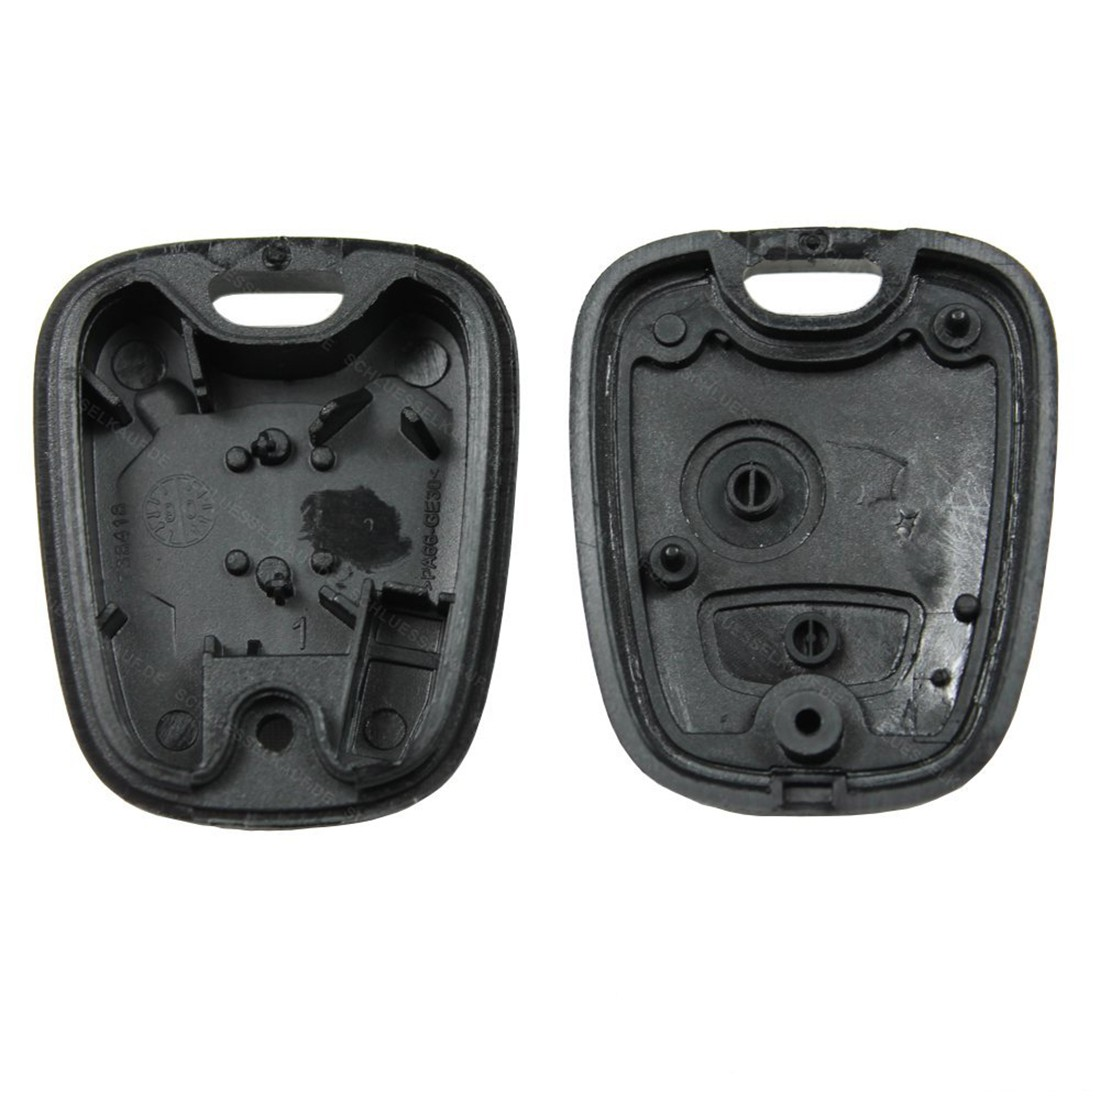 Black Replacement Entry Plastic Key Keyless Remote Fob Shell Case Housing for Peugeot 206 207 306